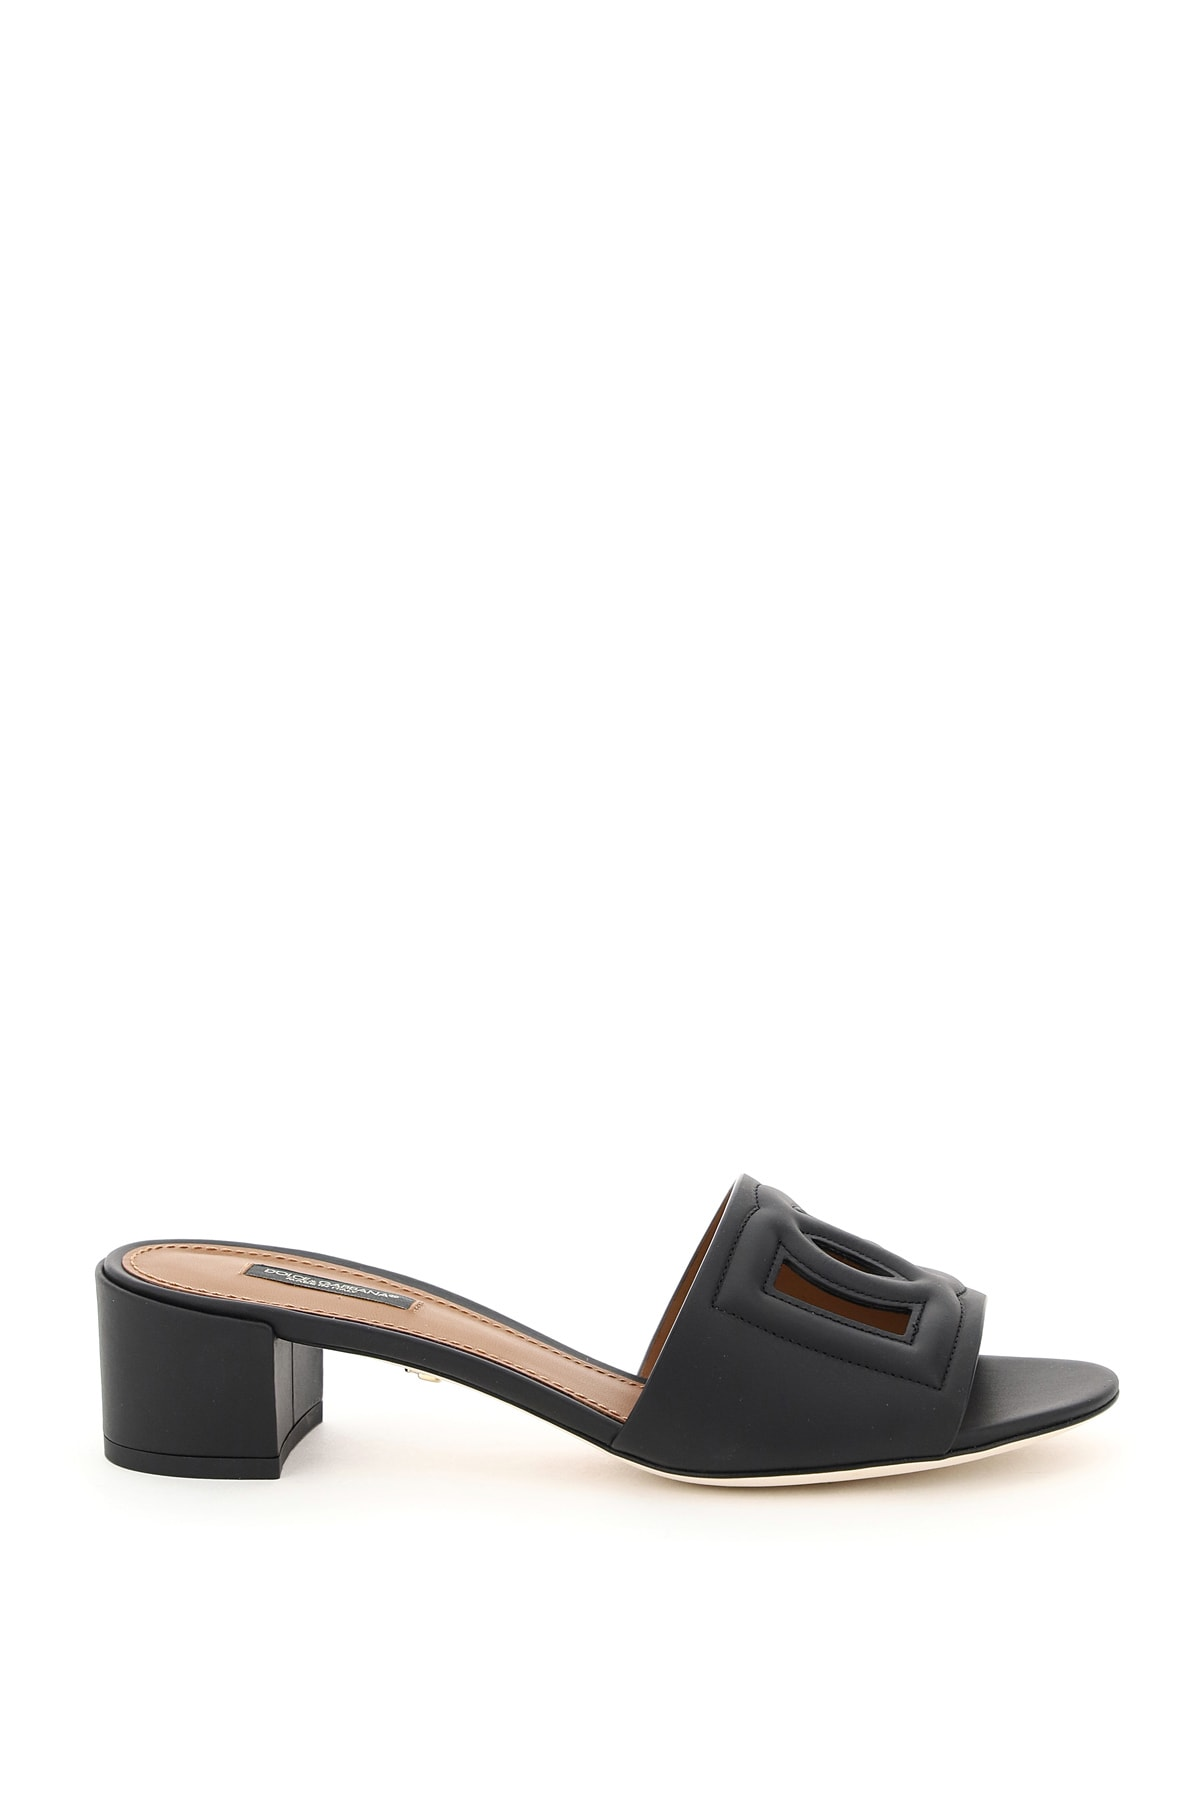 Buy Dolce & Gabbana Crystal Mules Dg Millennials online, shop Dolce & Gabbana shoes with free shipping